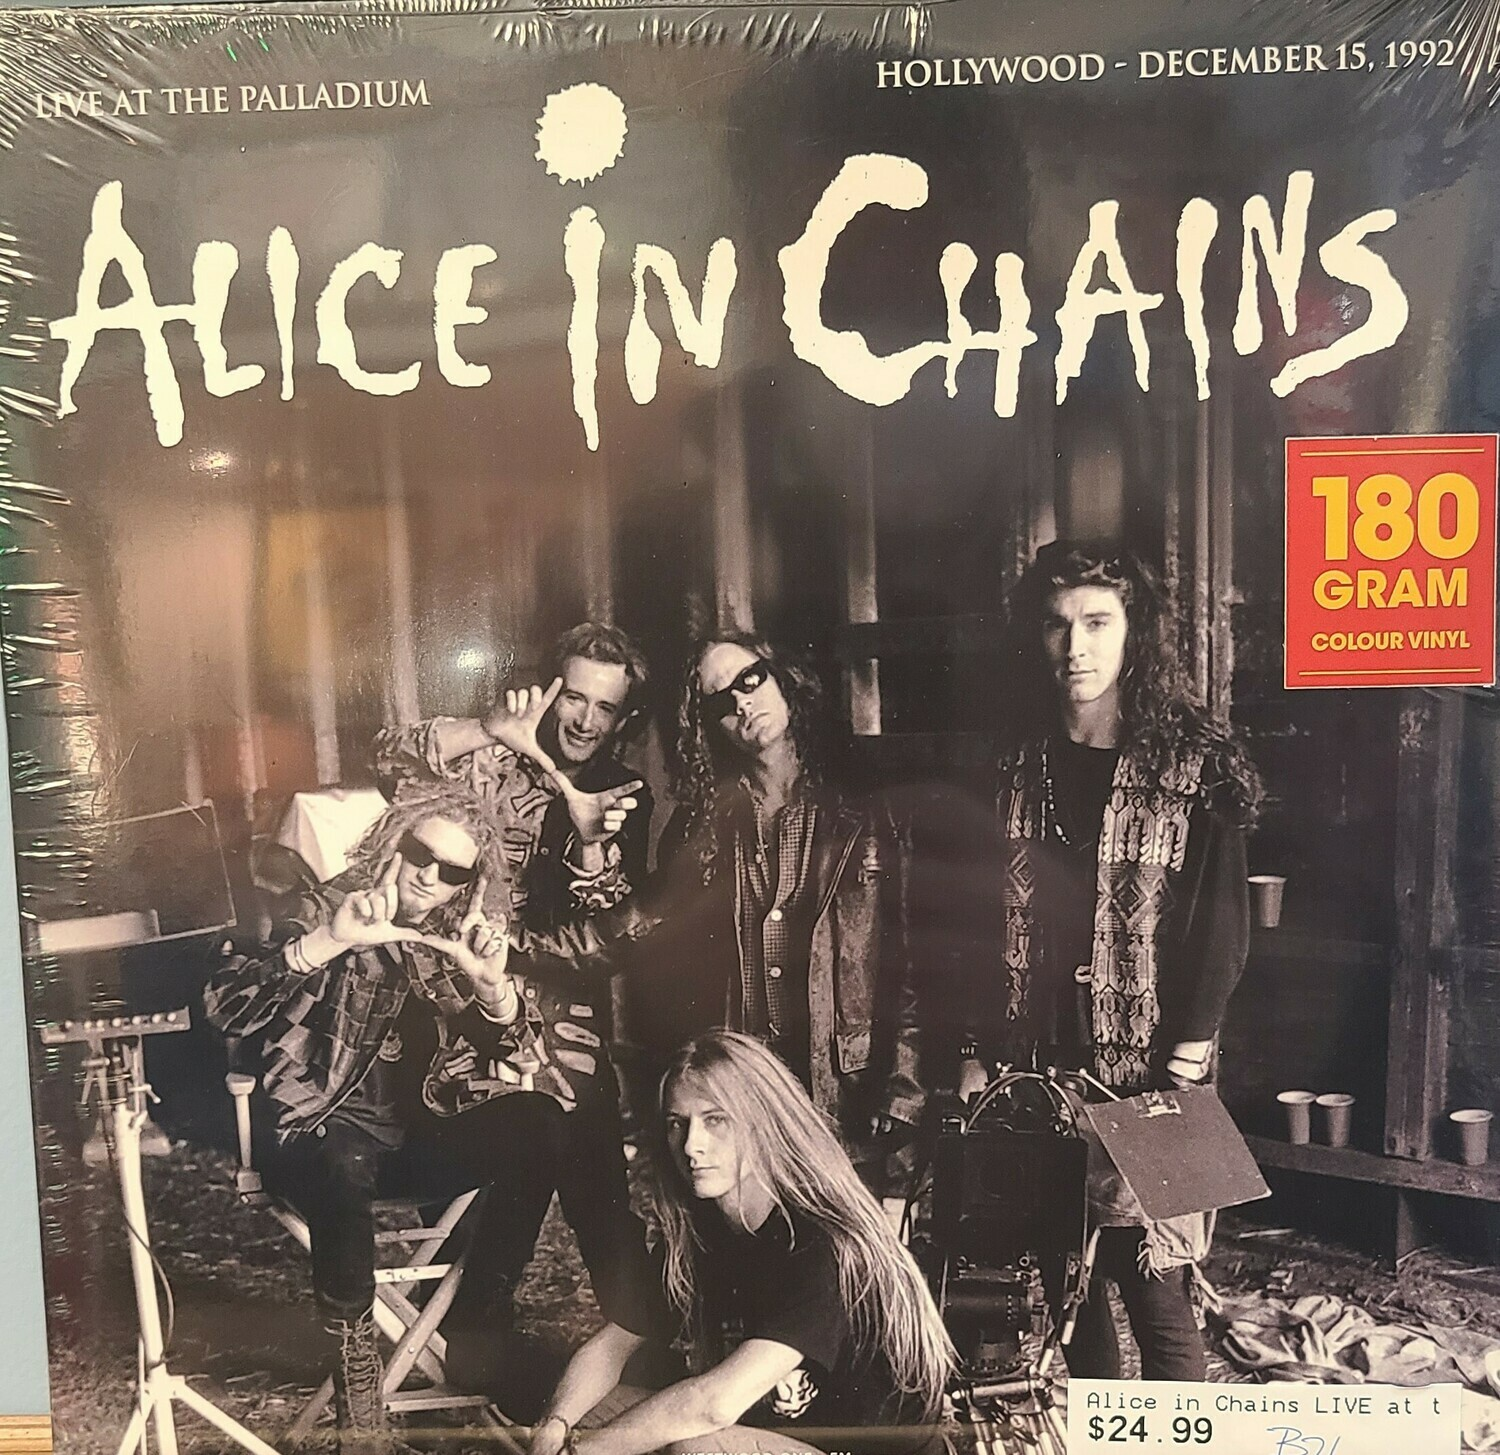 Alice In Chains - LP - Live at the Palladium